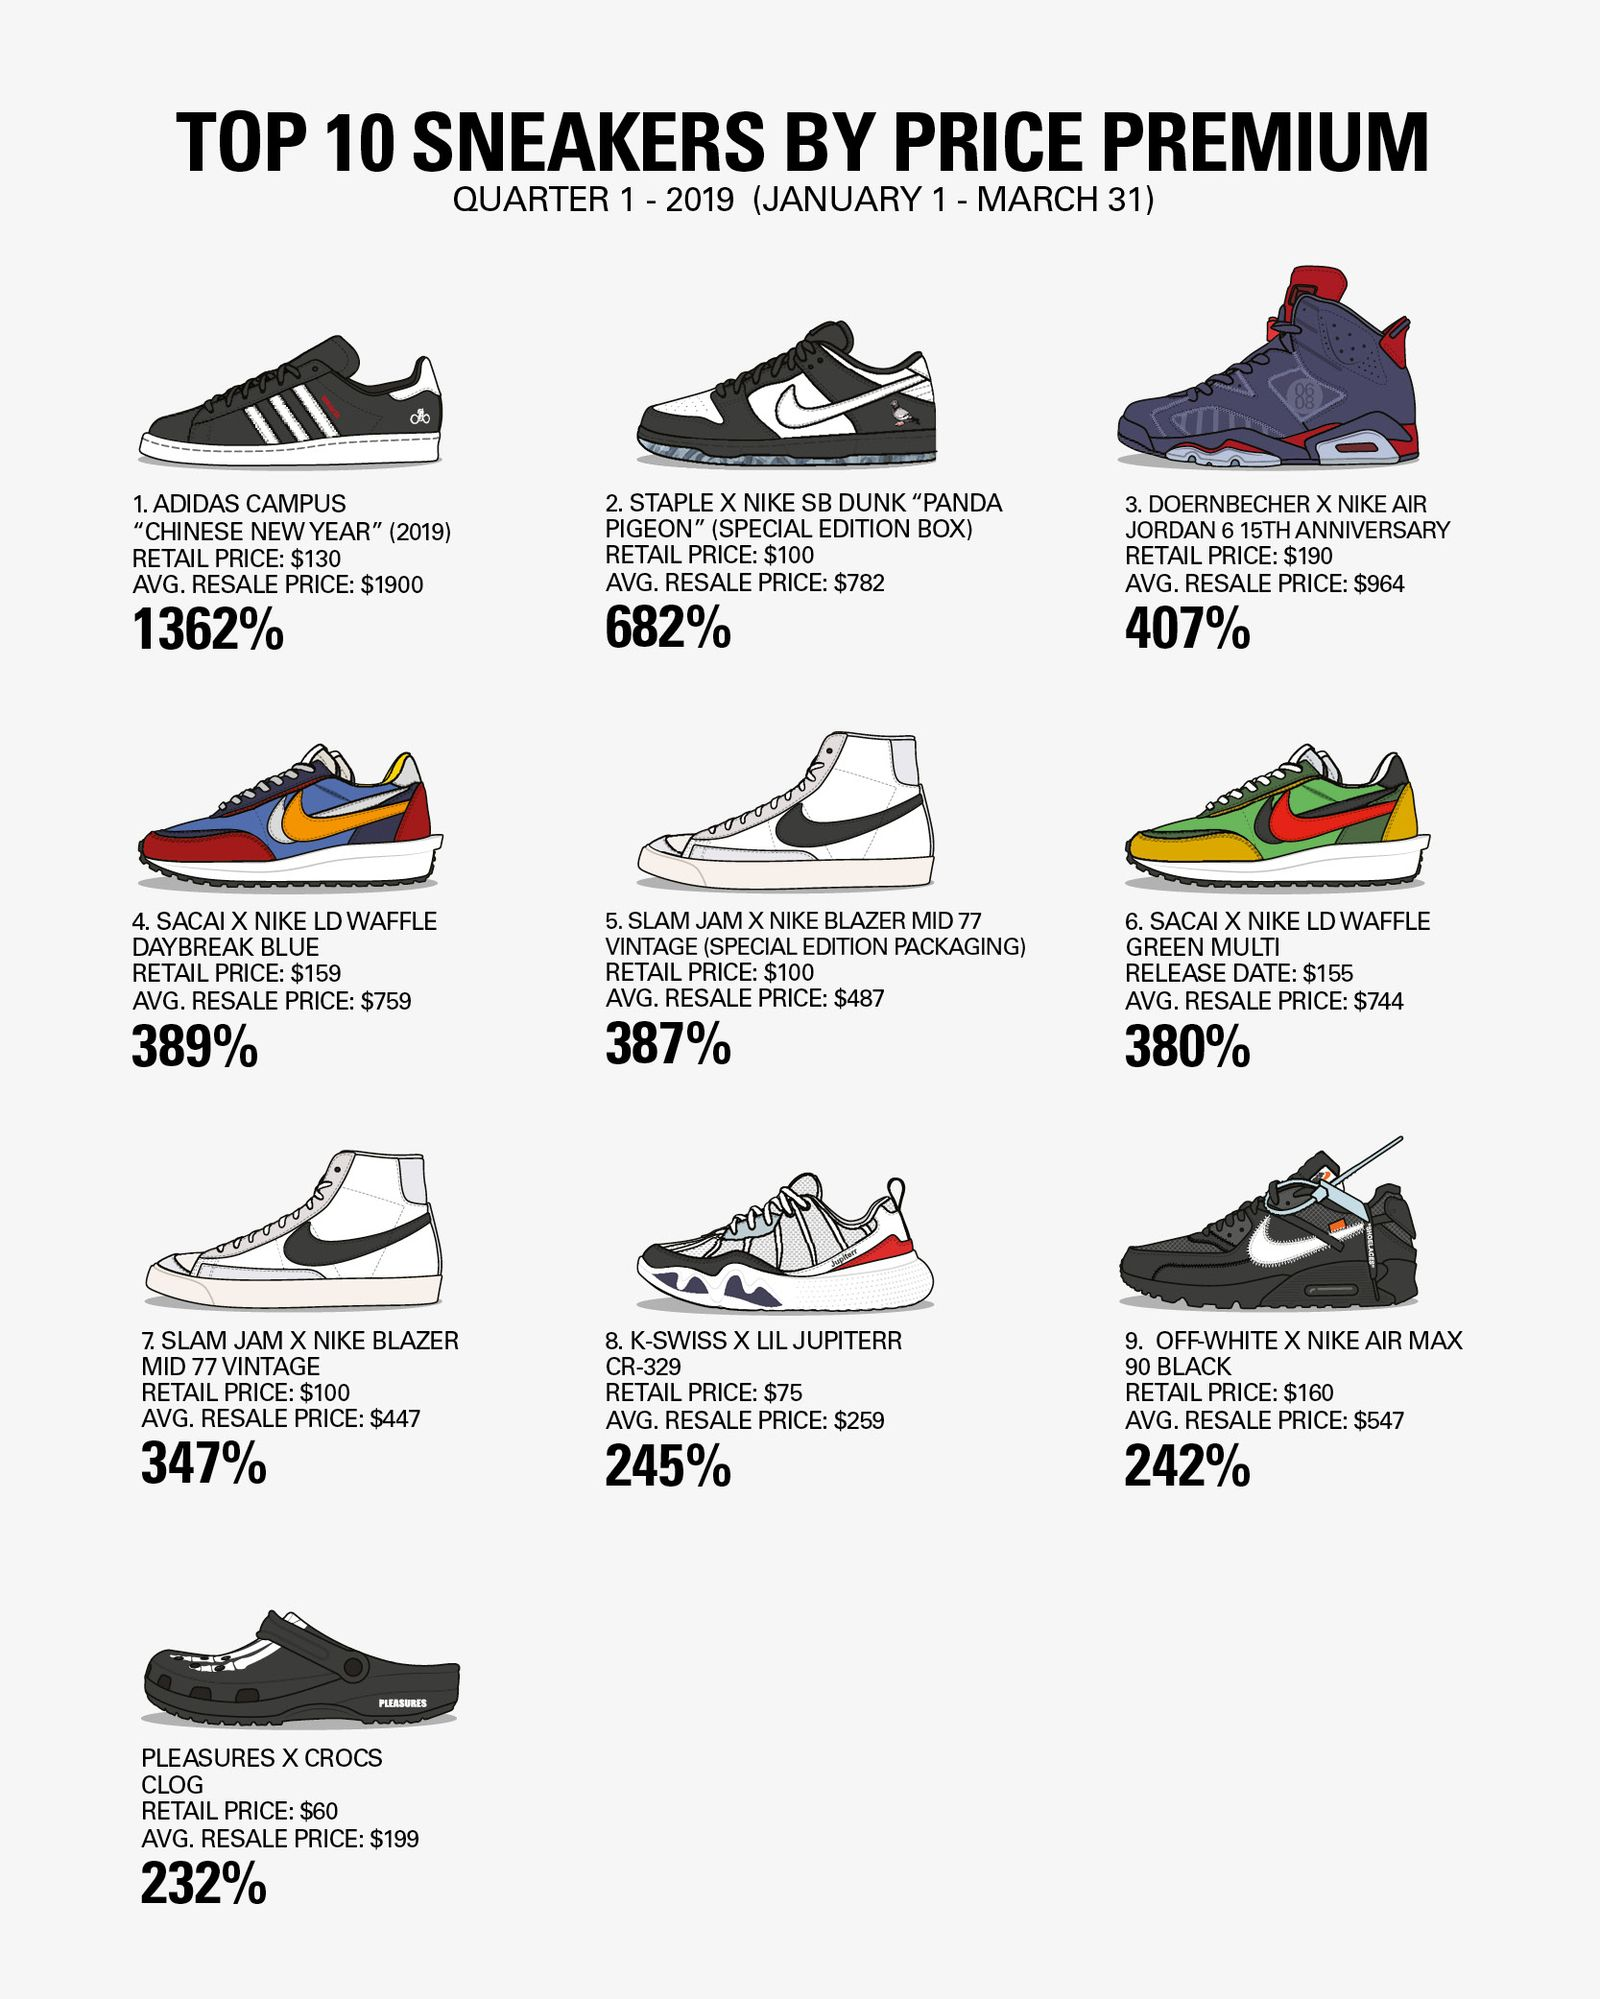 most valuable sneakers 2019 q 1 Adidas Nike